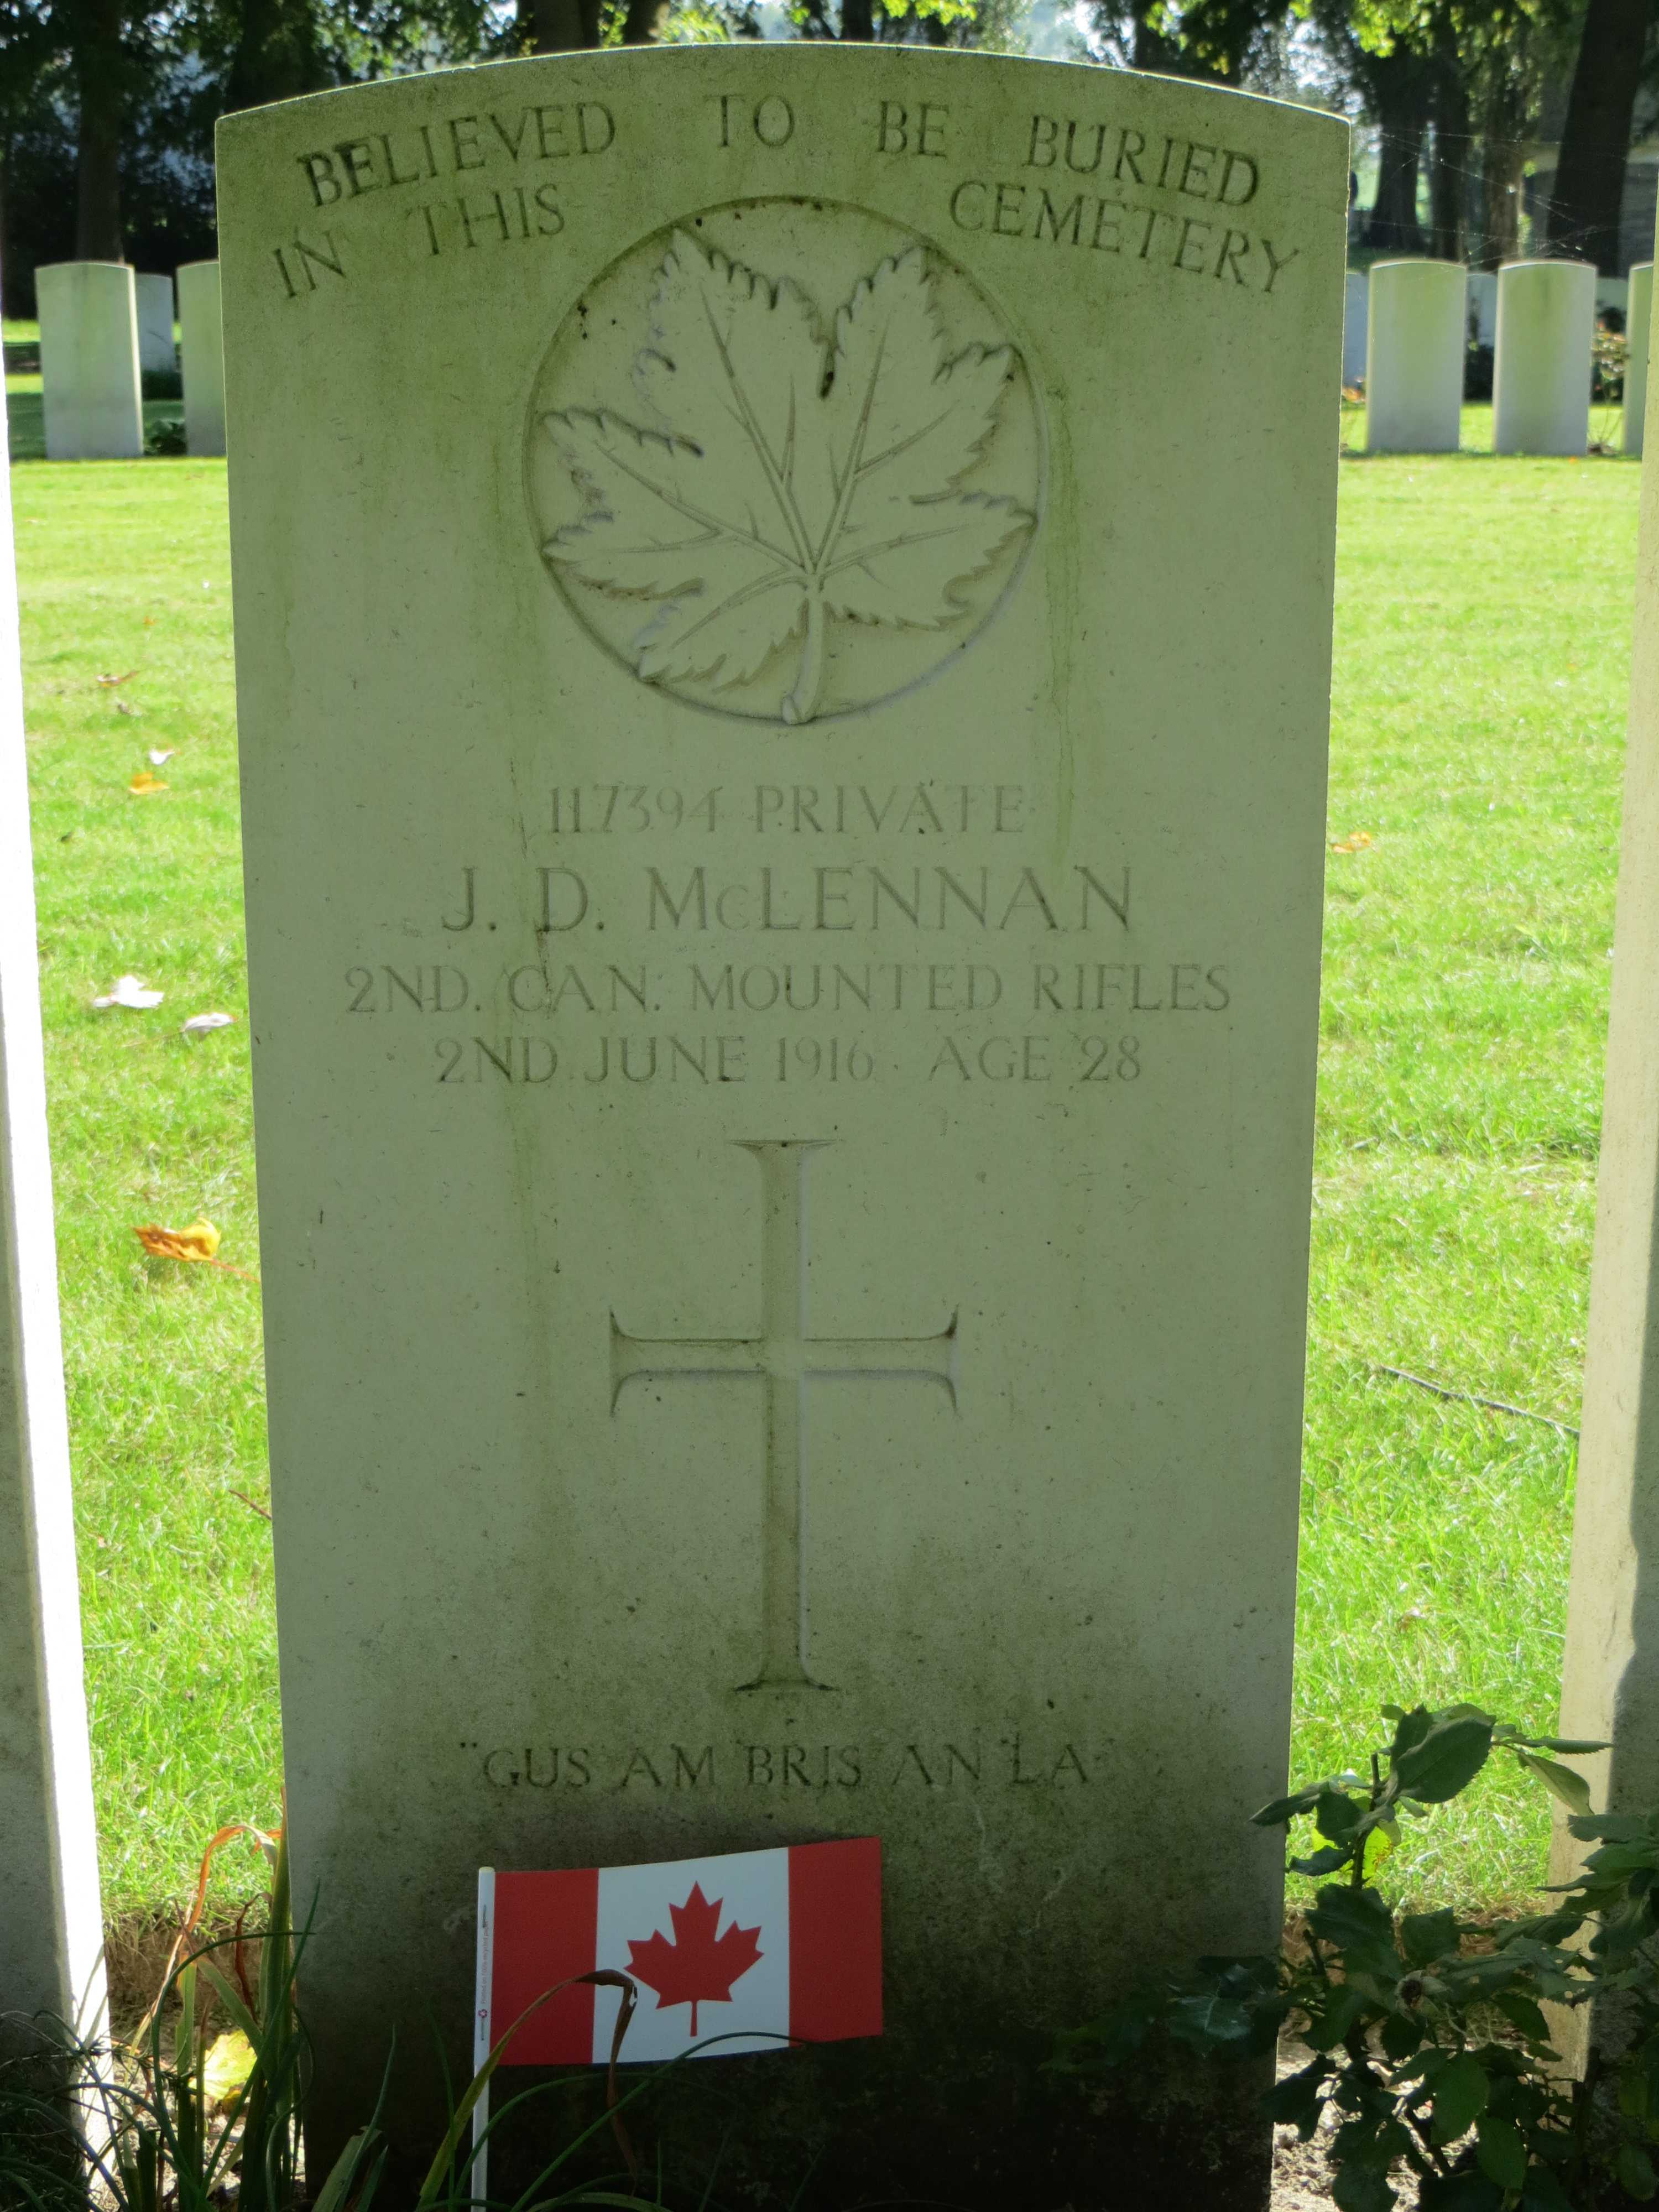 Grave marker– Headstone for John Donald McLennan at Maple Copse Cemetery - September 2017. May he rest in peace.